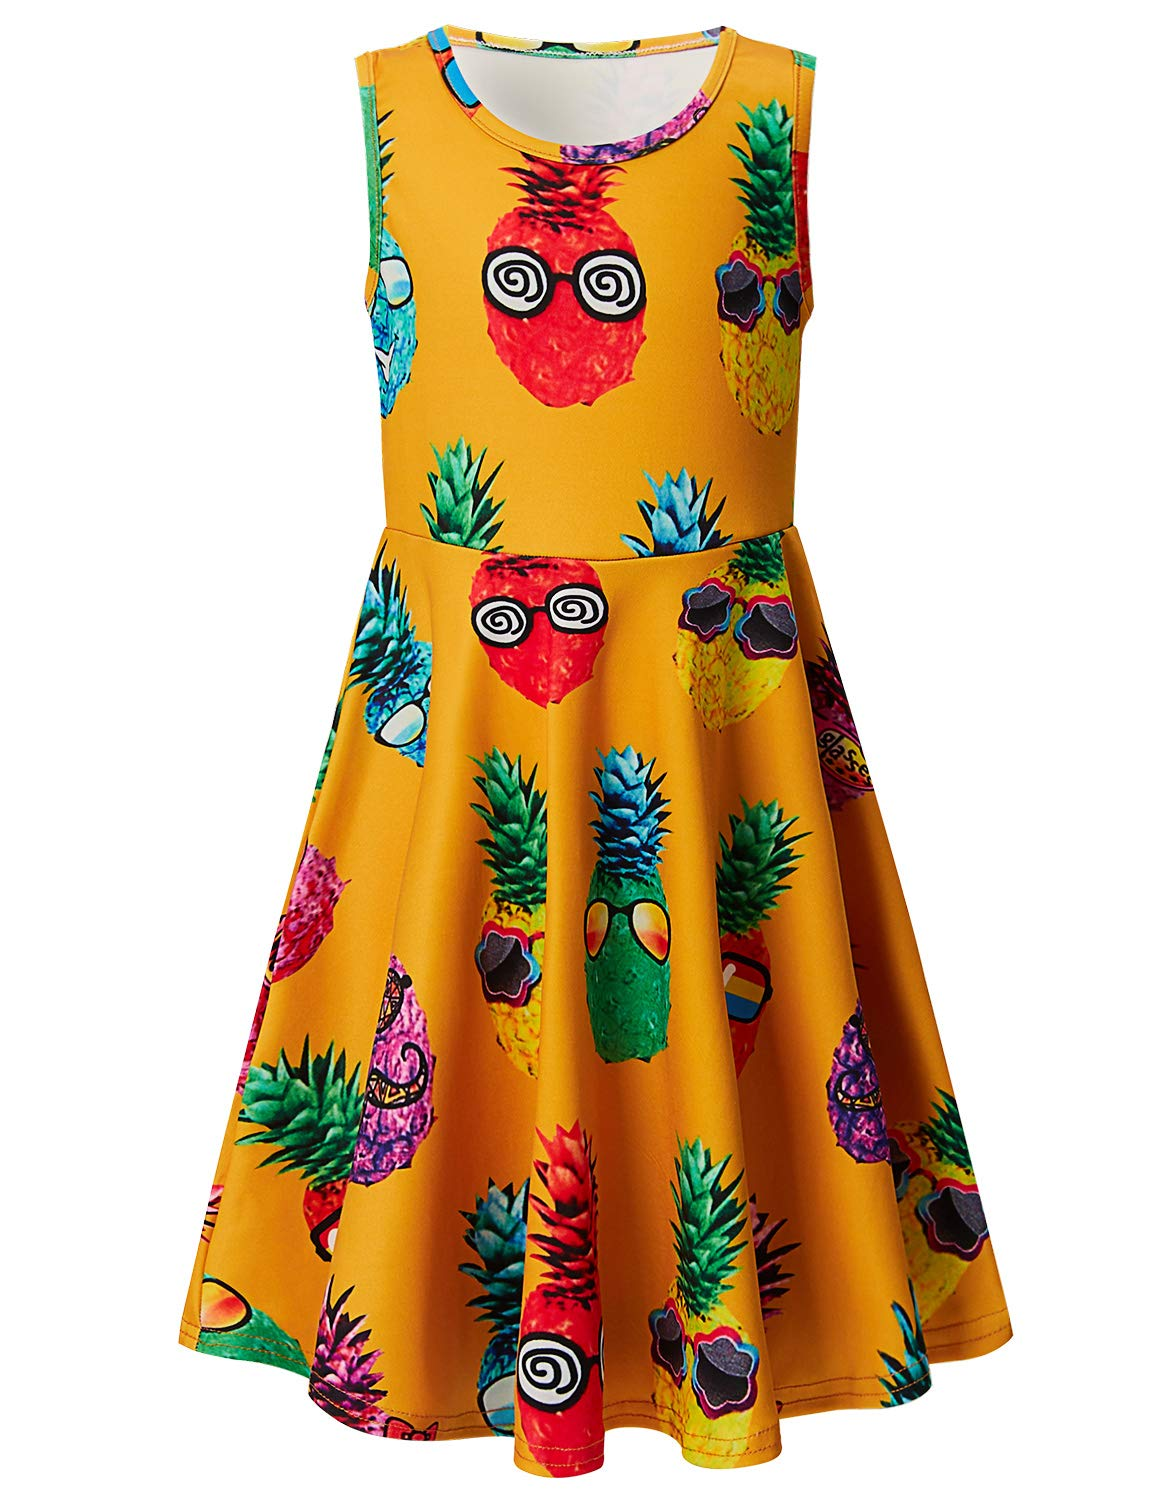 Leapparel Kids Girls Skater Dress Floral Sunglasses Pineapple Print Summer Party Sun Dress XL by Leapparel